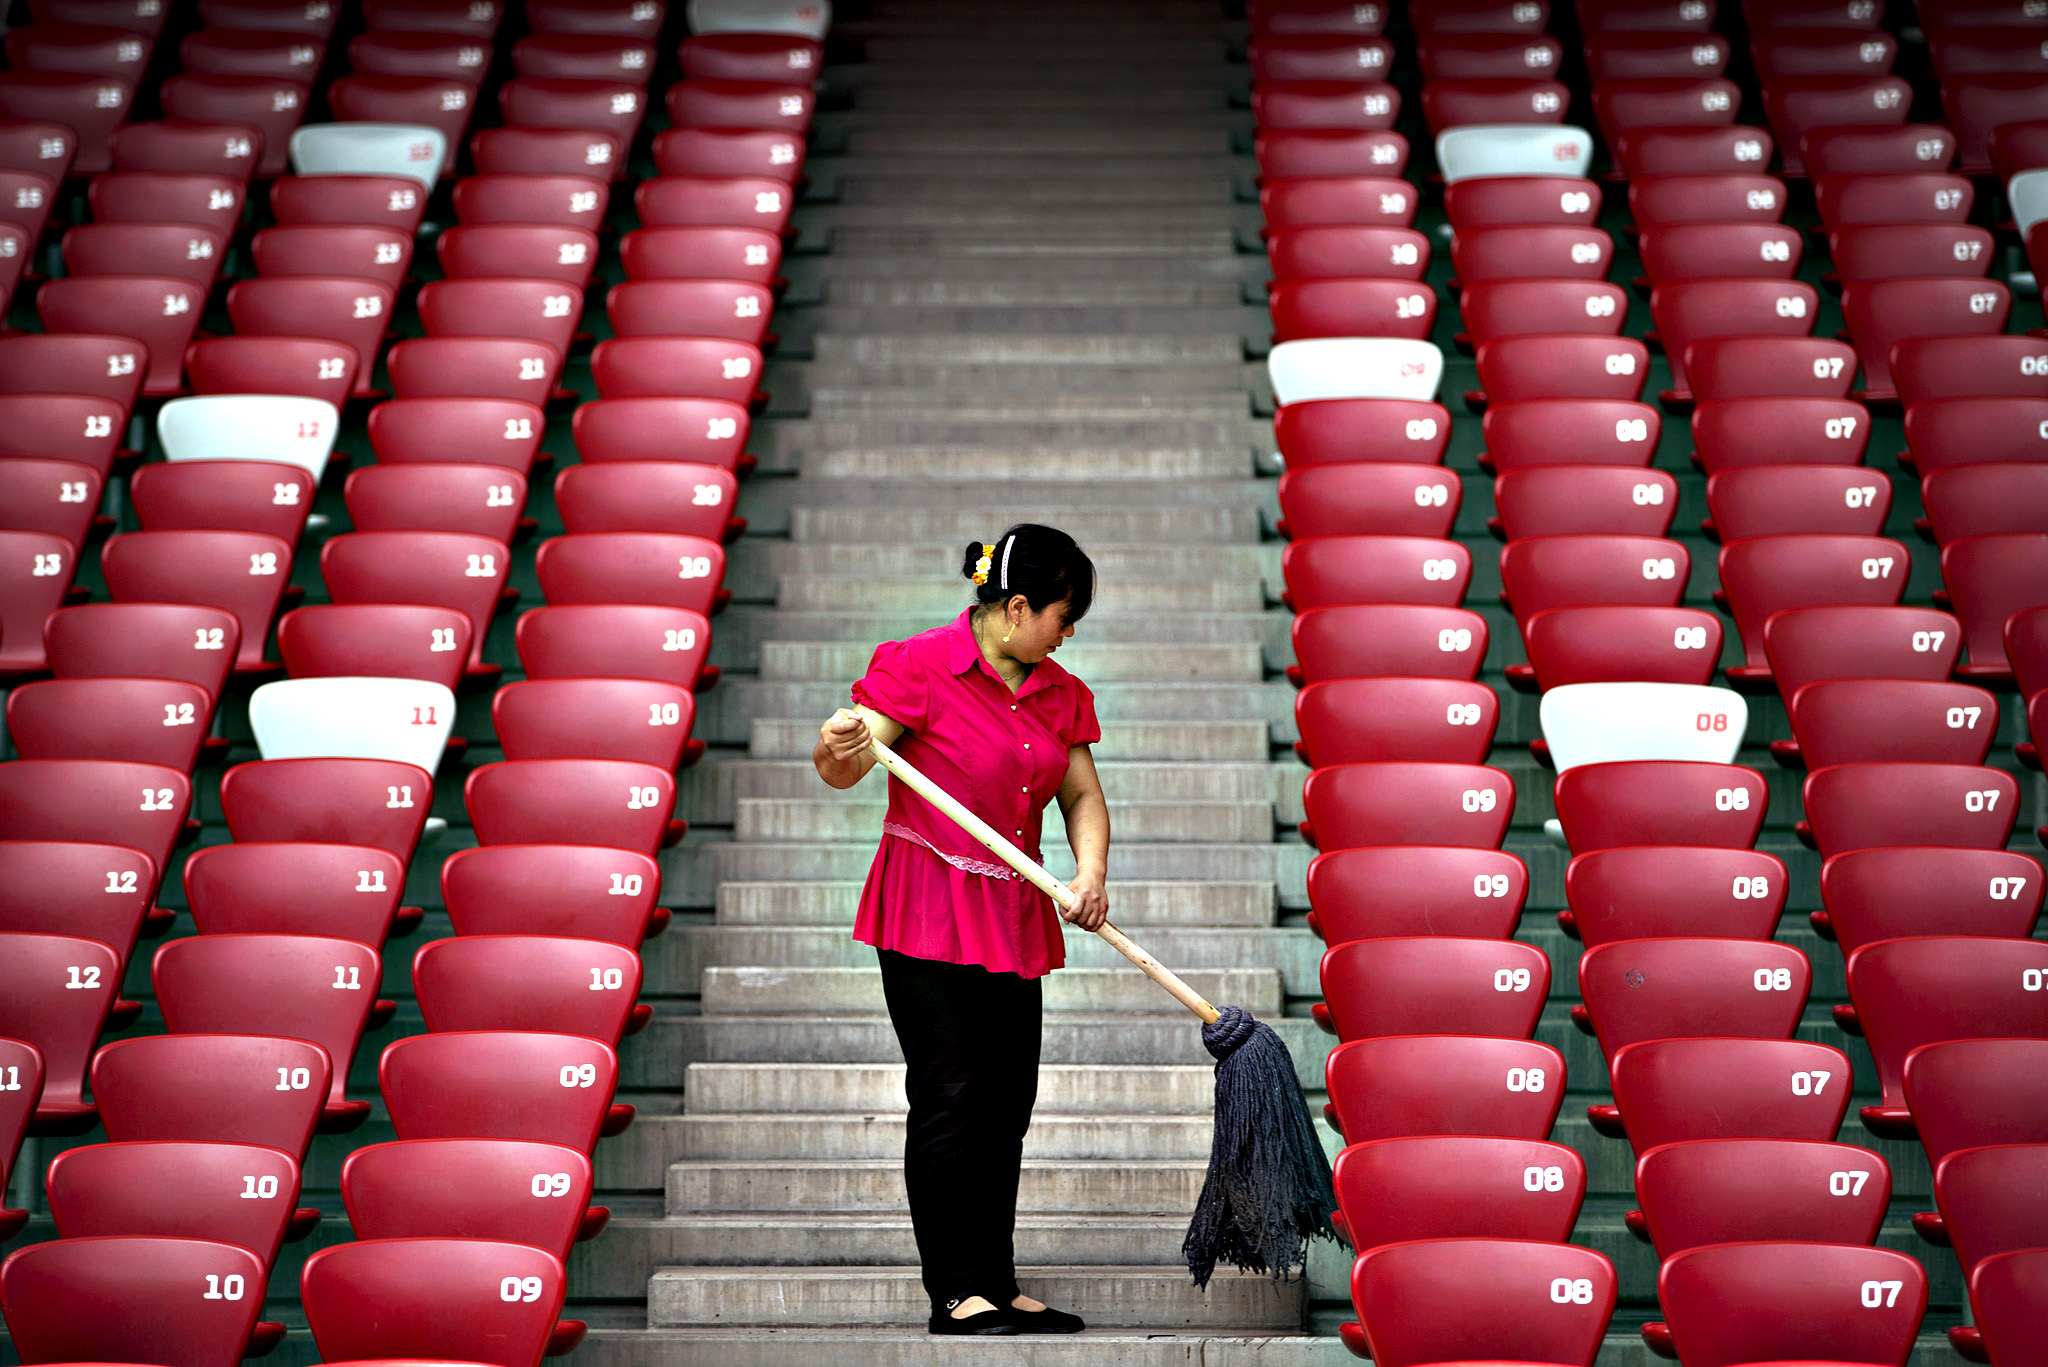 A maintenance worker mops steps at the Beijing Olympic Stadium, also known as the Bird's Nest, in Beijing, Thursday, Aug. 20, 2015. Final preparations are being World Athletics Championships, which runs from Aug. 22 to 30.